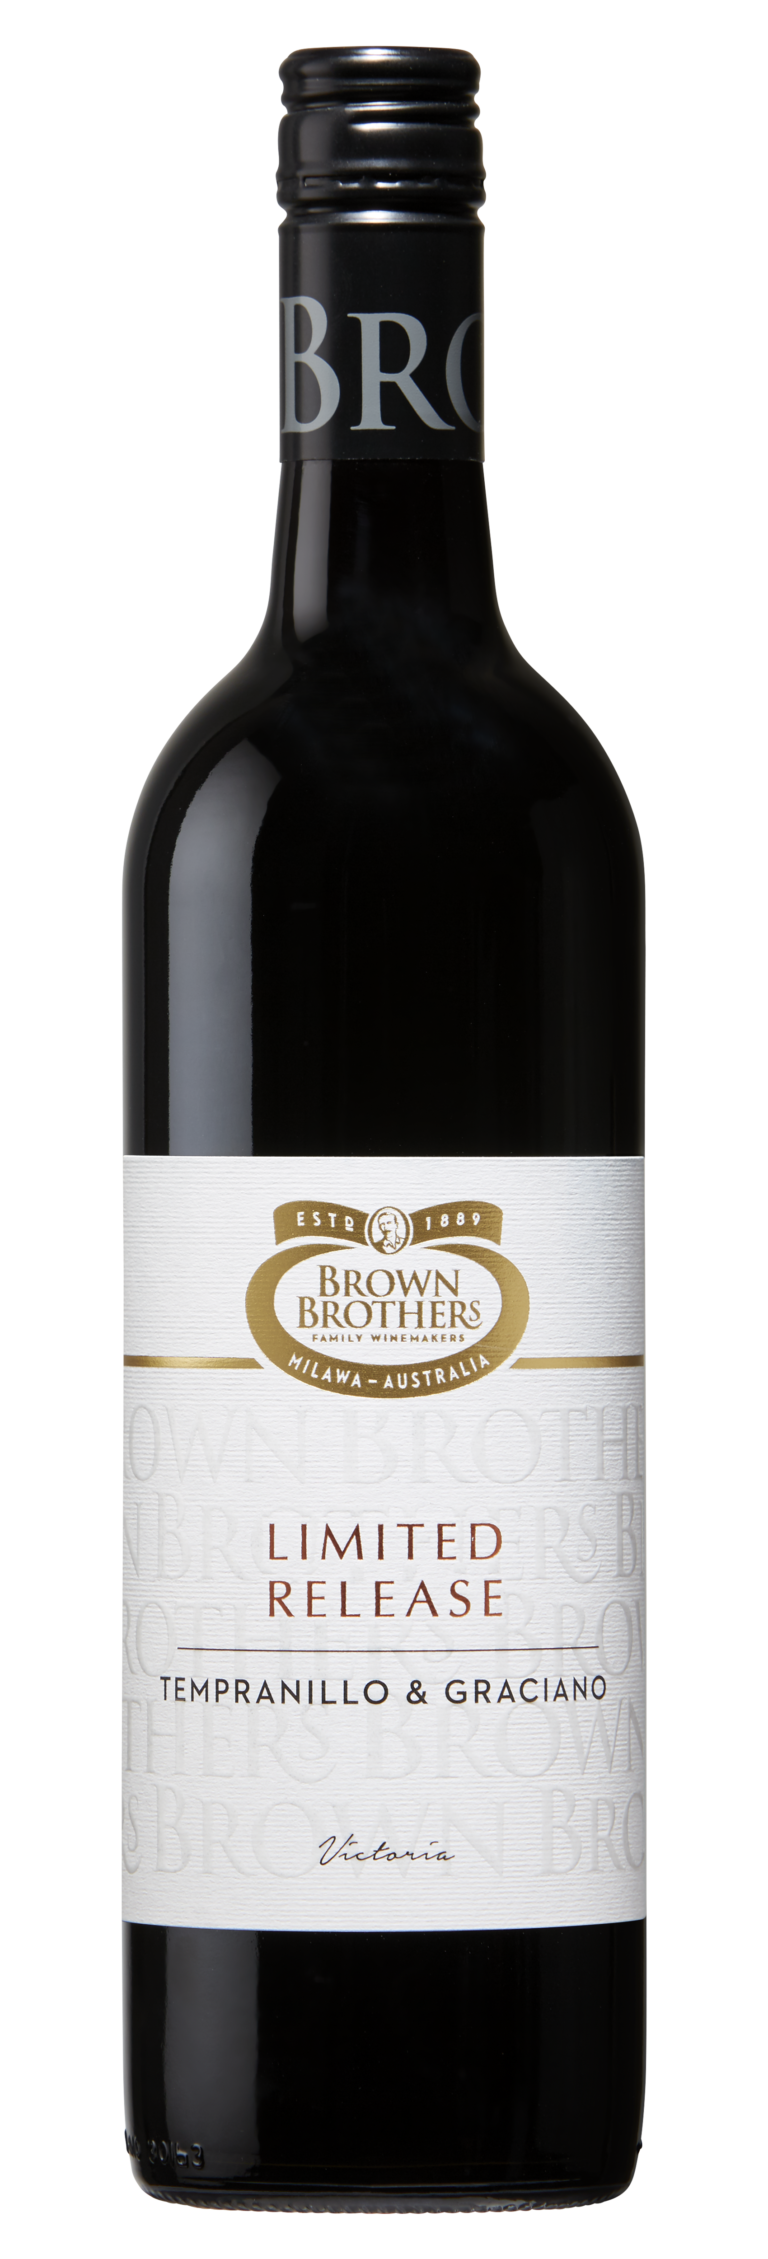 Brown Brothers - Hand-Crafting Wines since 1889 | Brown Brothers